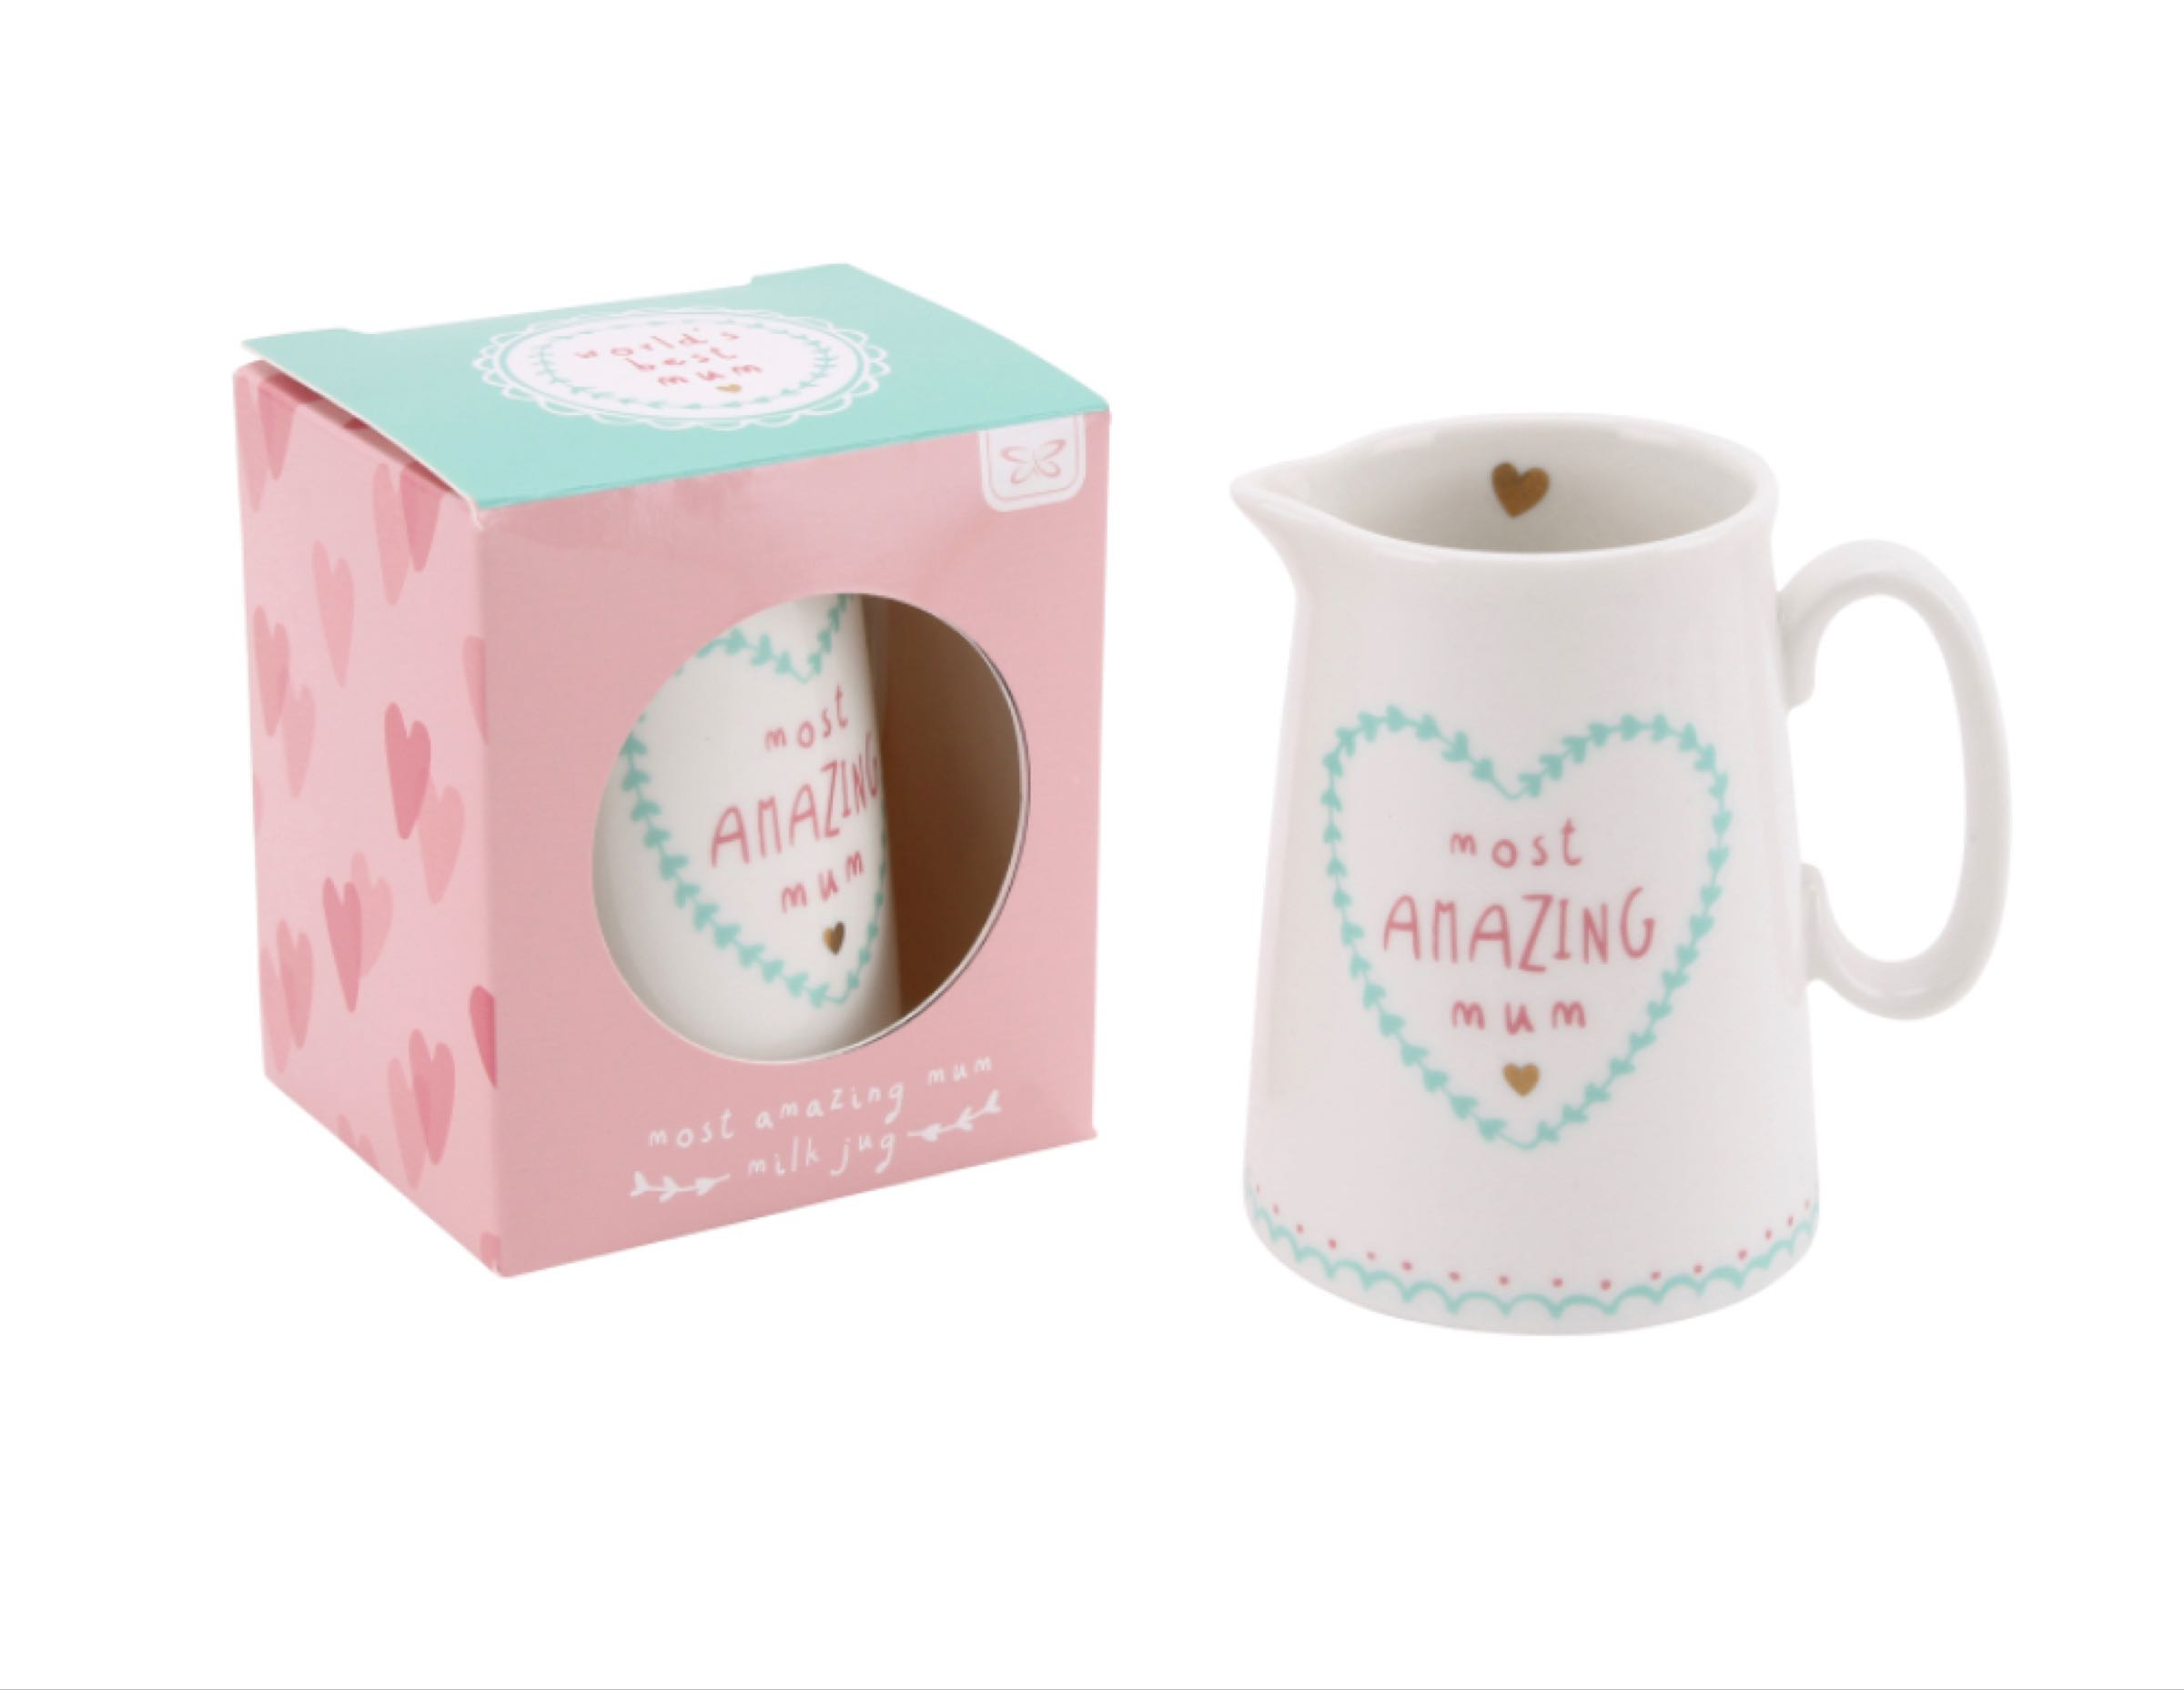 'Most Amazing Mum' Milk Jug 8cmx10cmx5.5cm